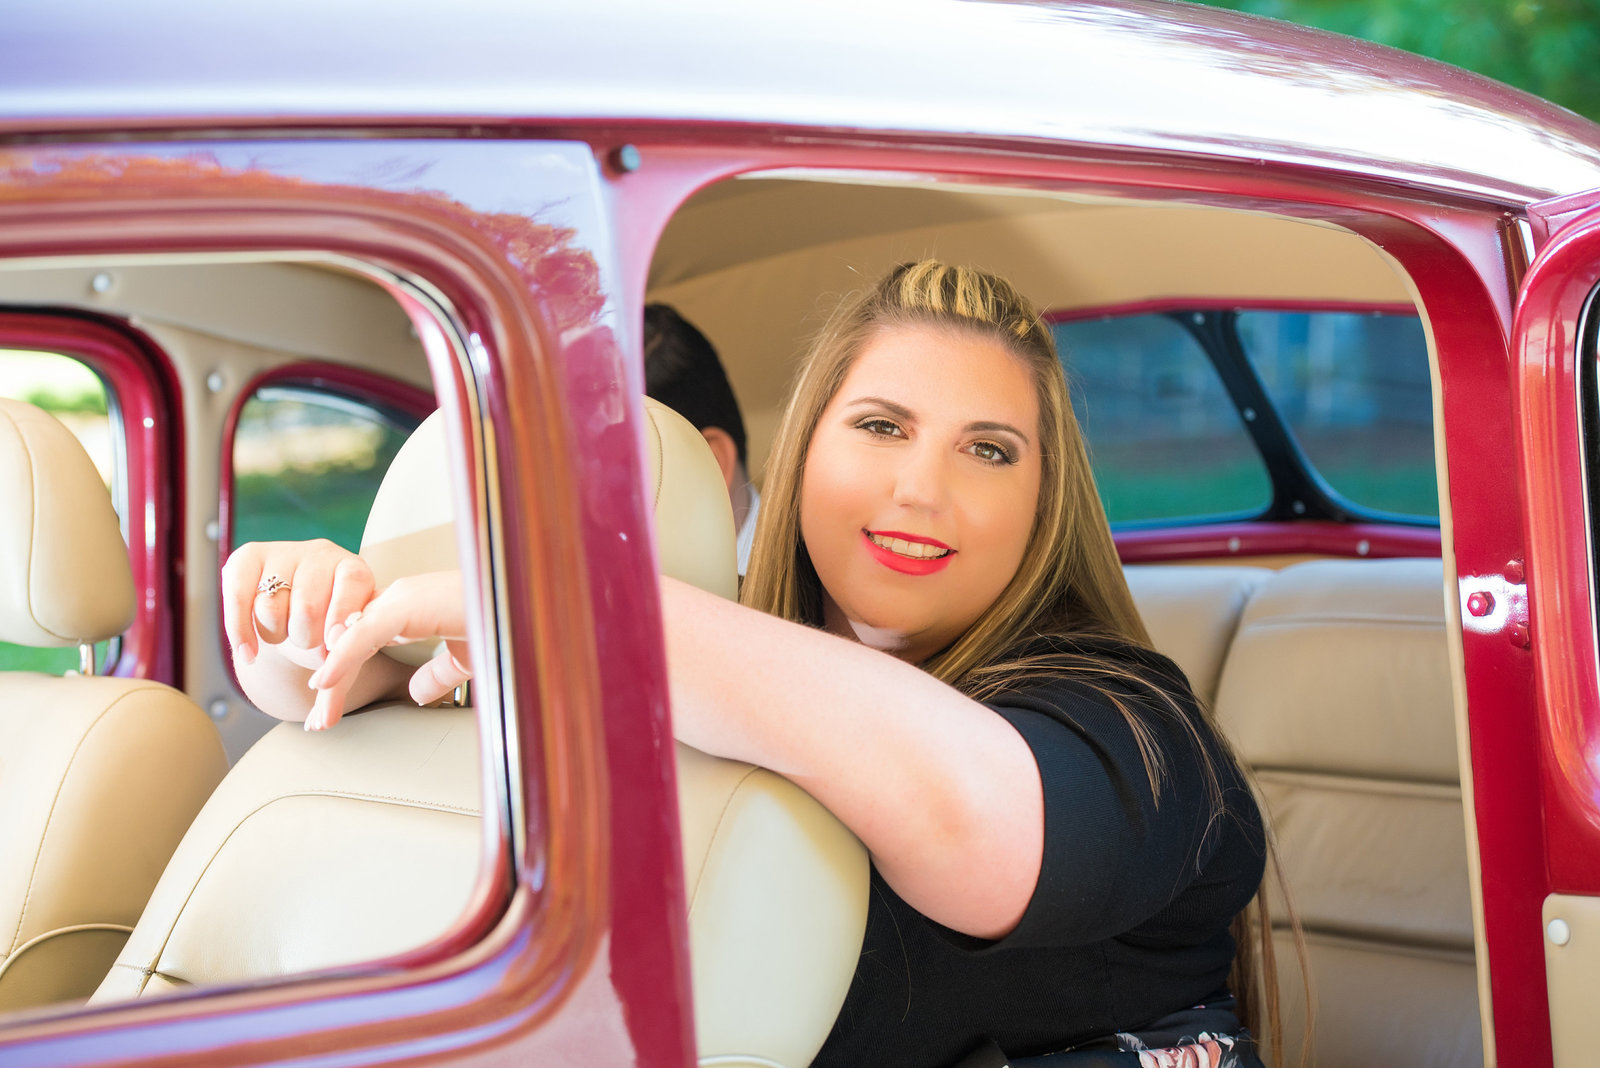 Retro_Pinup_Car_engagement_session_Nj035